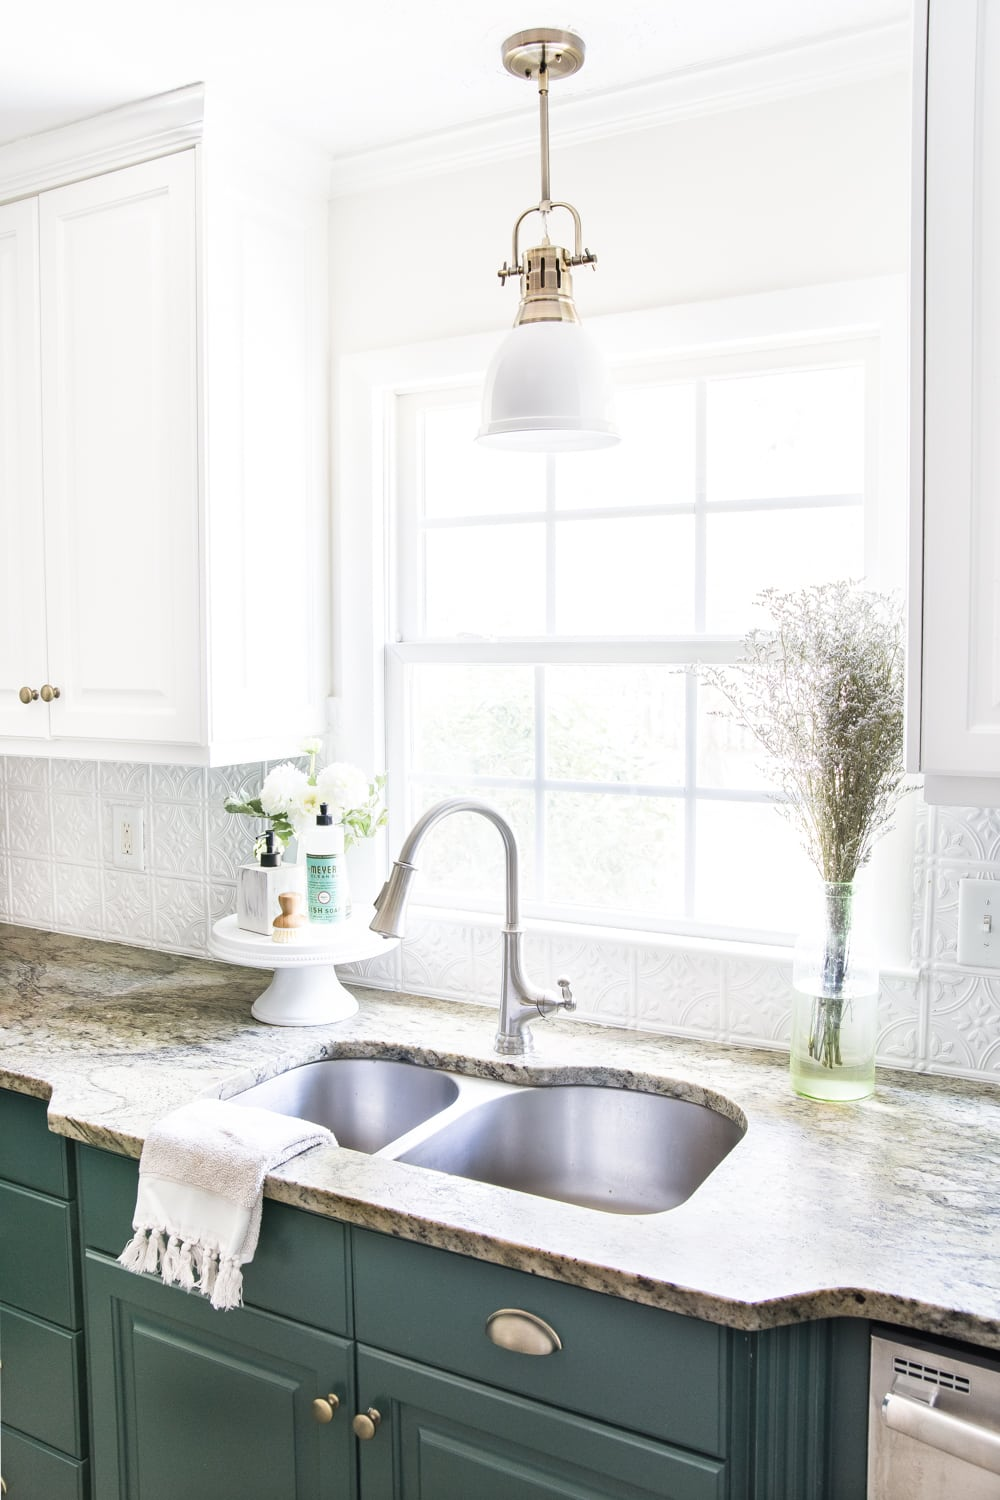 aged brass kitchen pendant light and leathered granite countertops - budget kitchen refresh